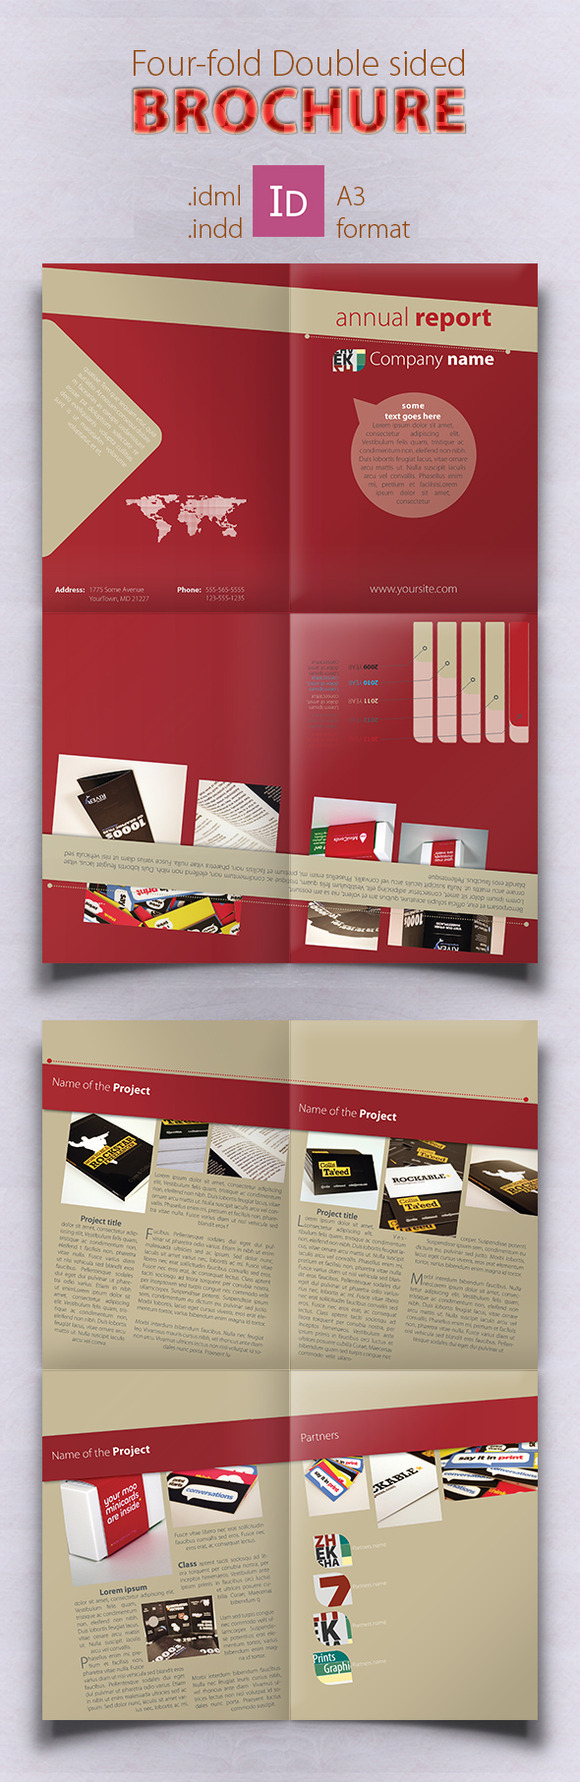 Check out Brochure Template by zheksha on Creative Market